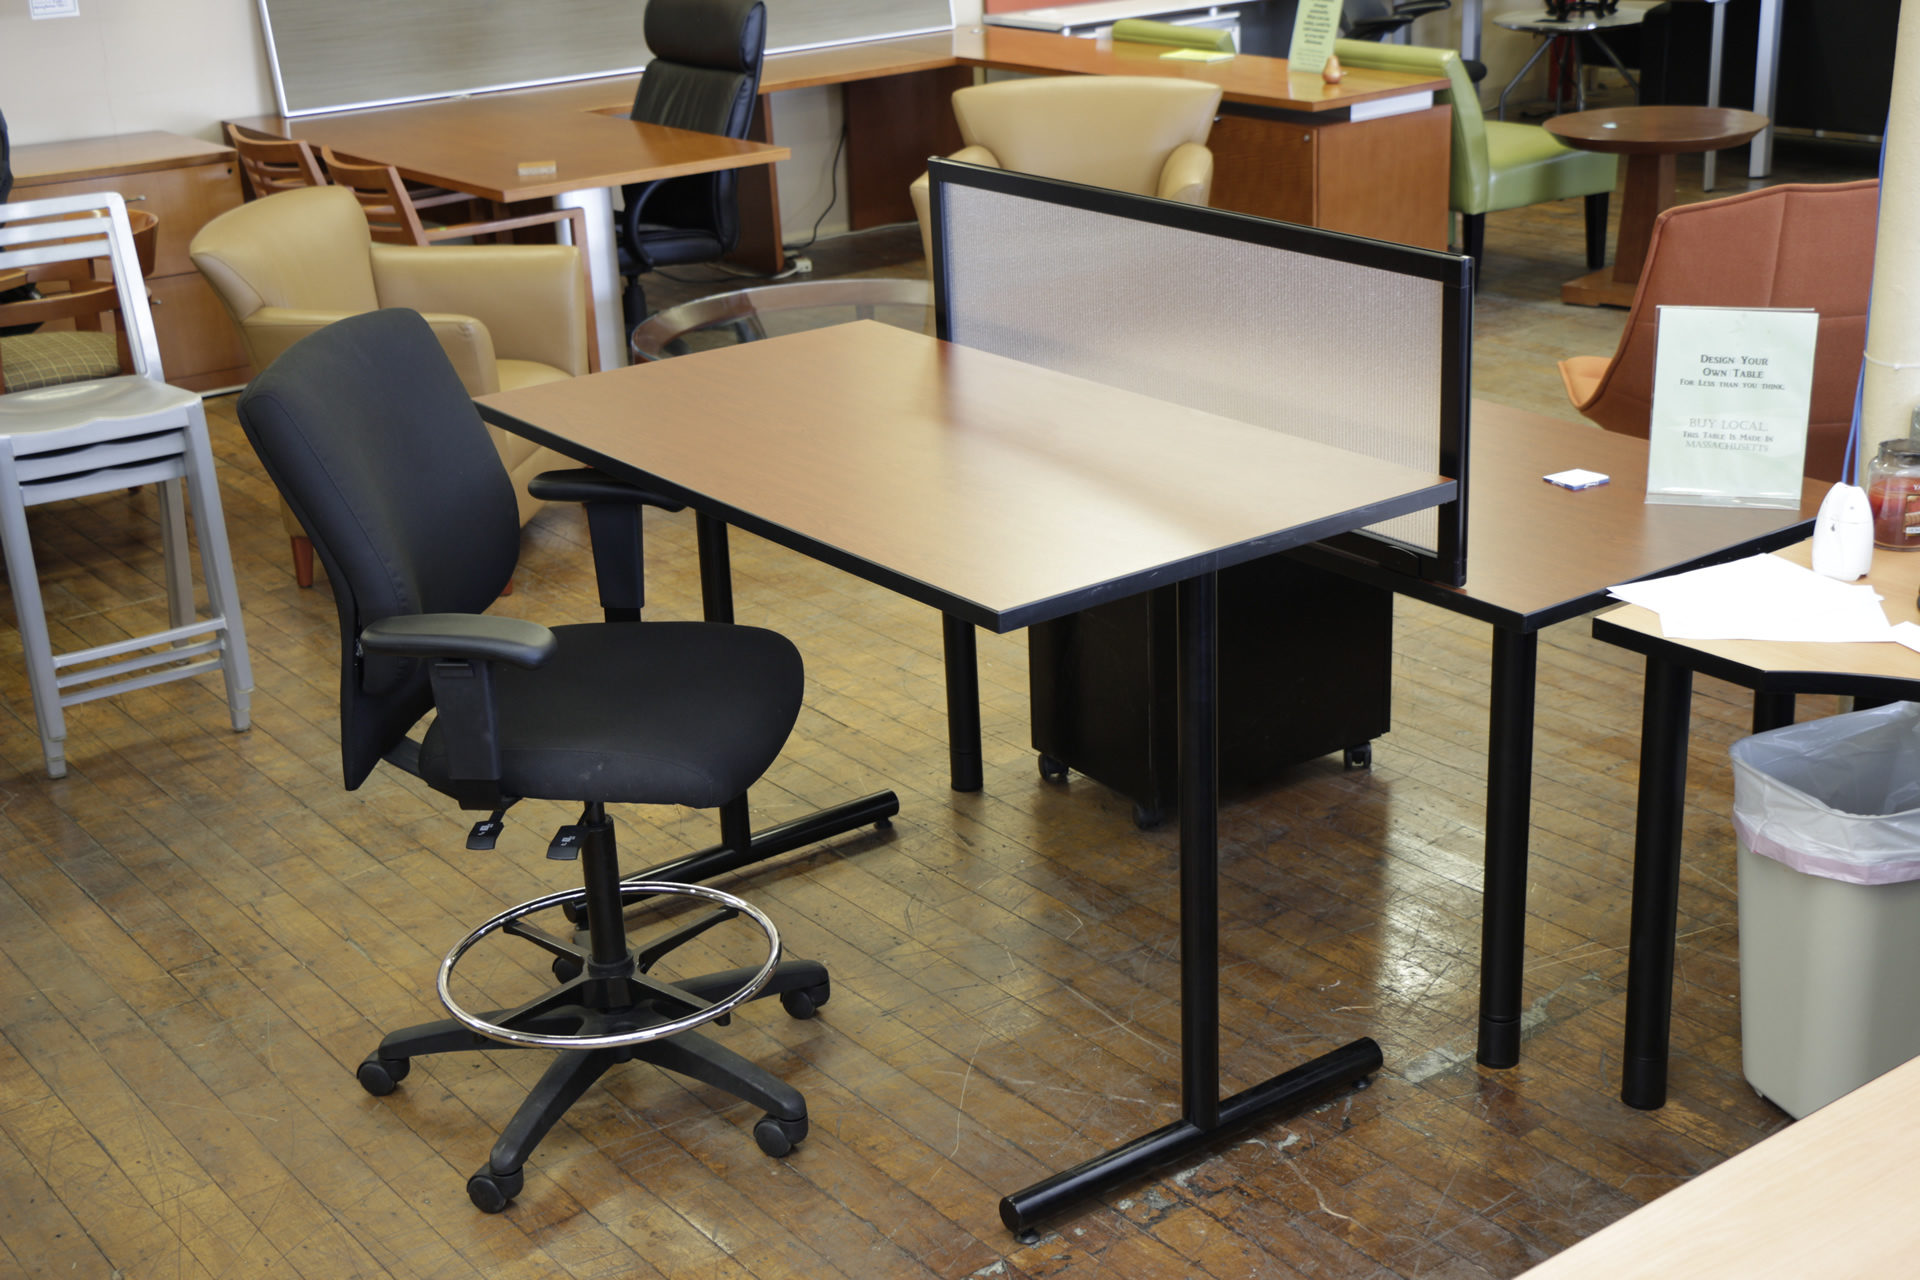 peartreeofficefurniture_peartreeofficefurniture_mg_3547.jpg